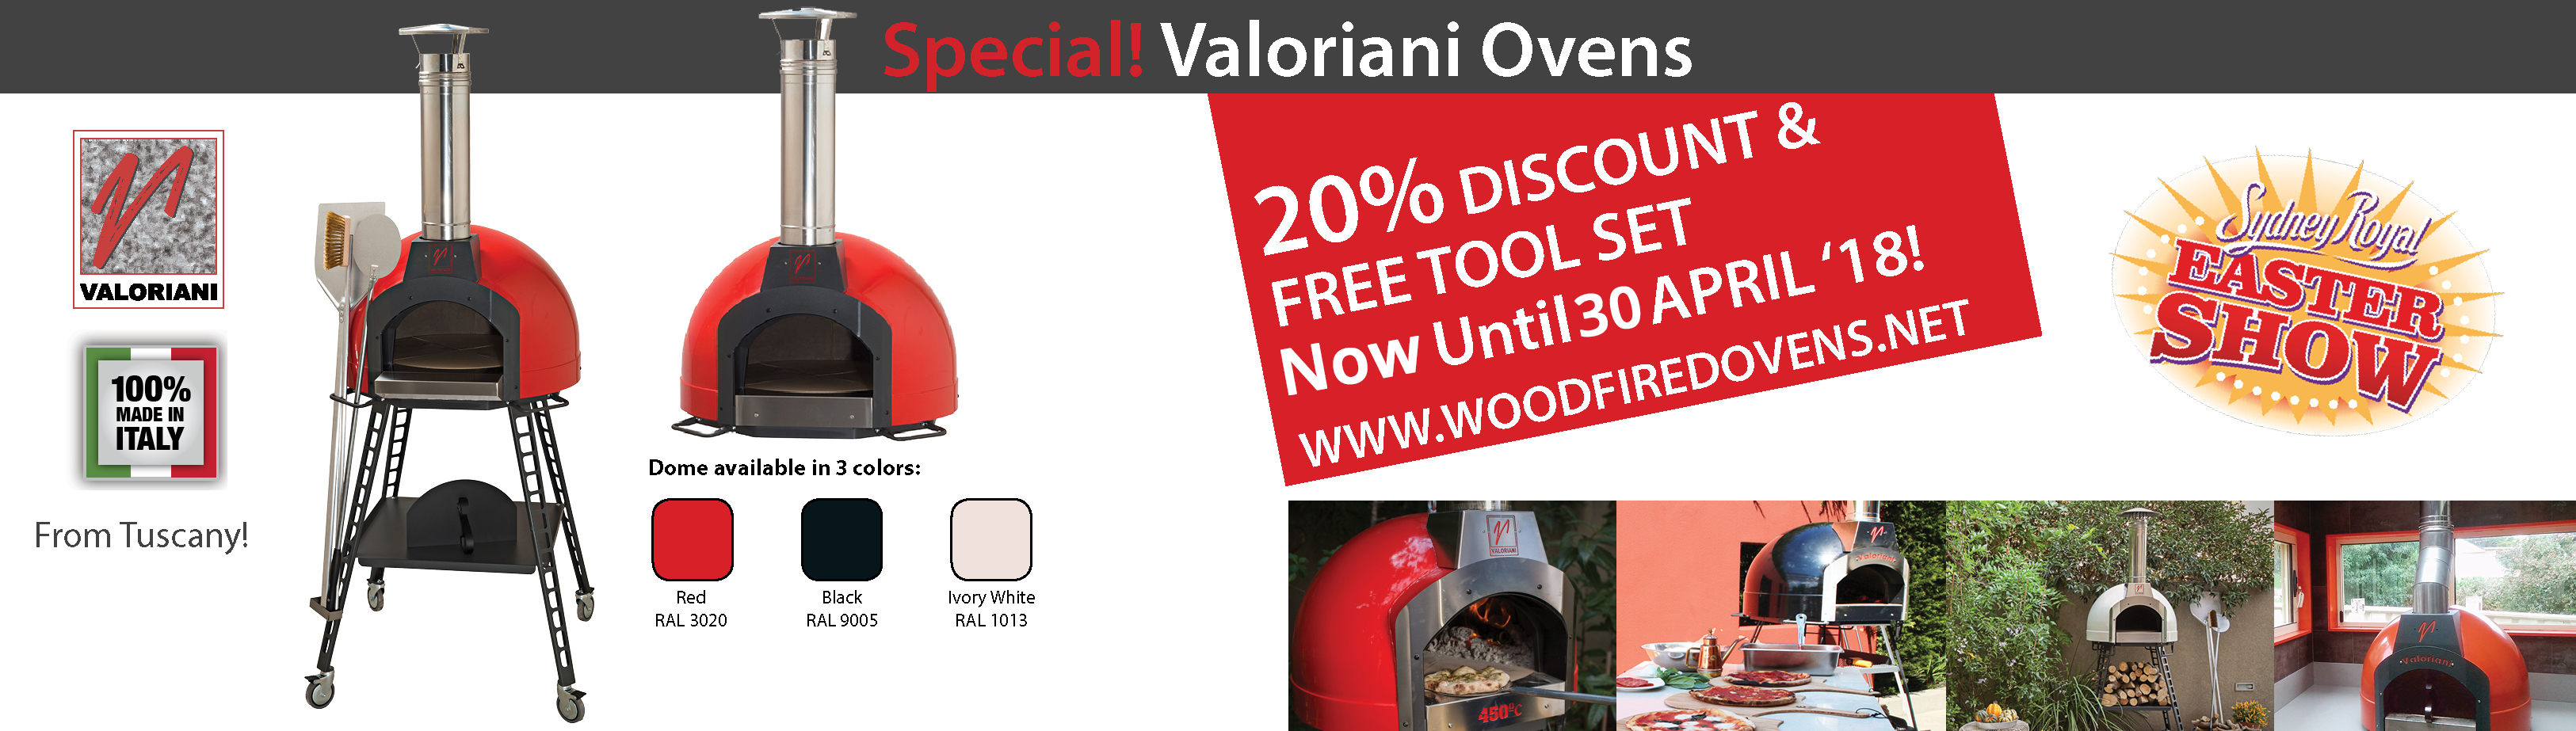 wood fired ovens special price